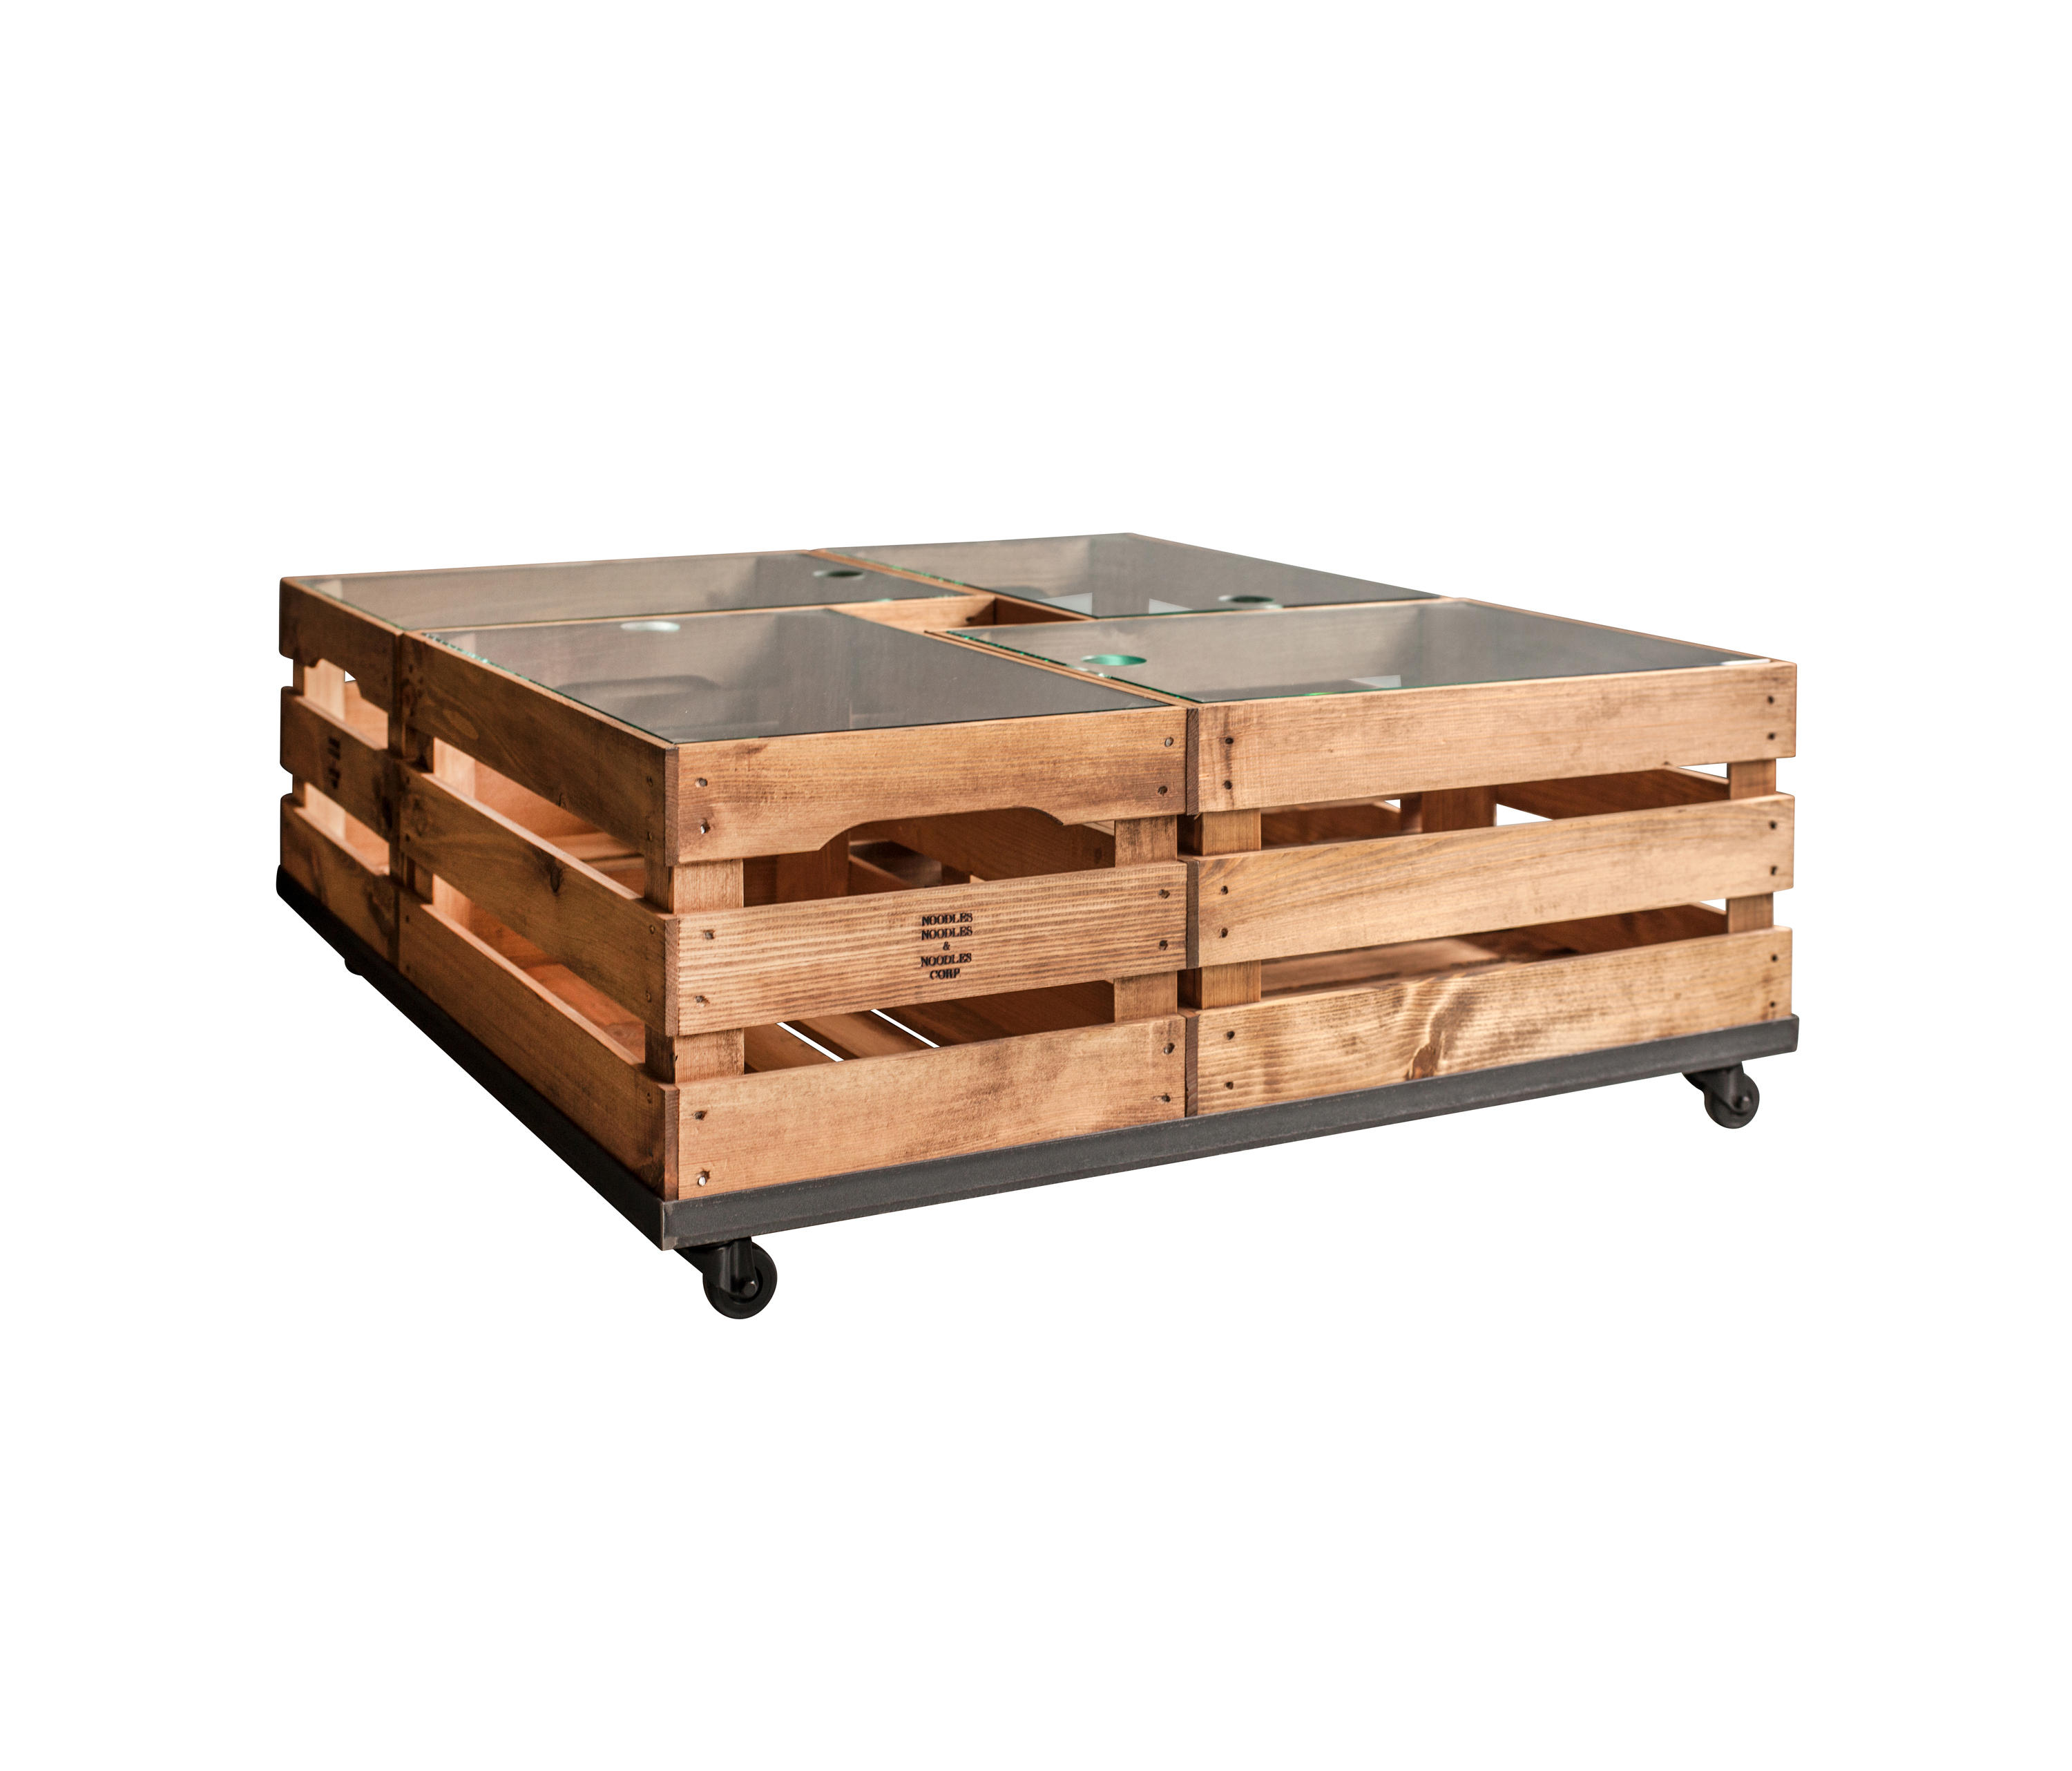 Wooden Crates Glass Table On Wheels Architonic